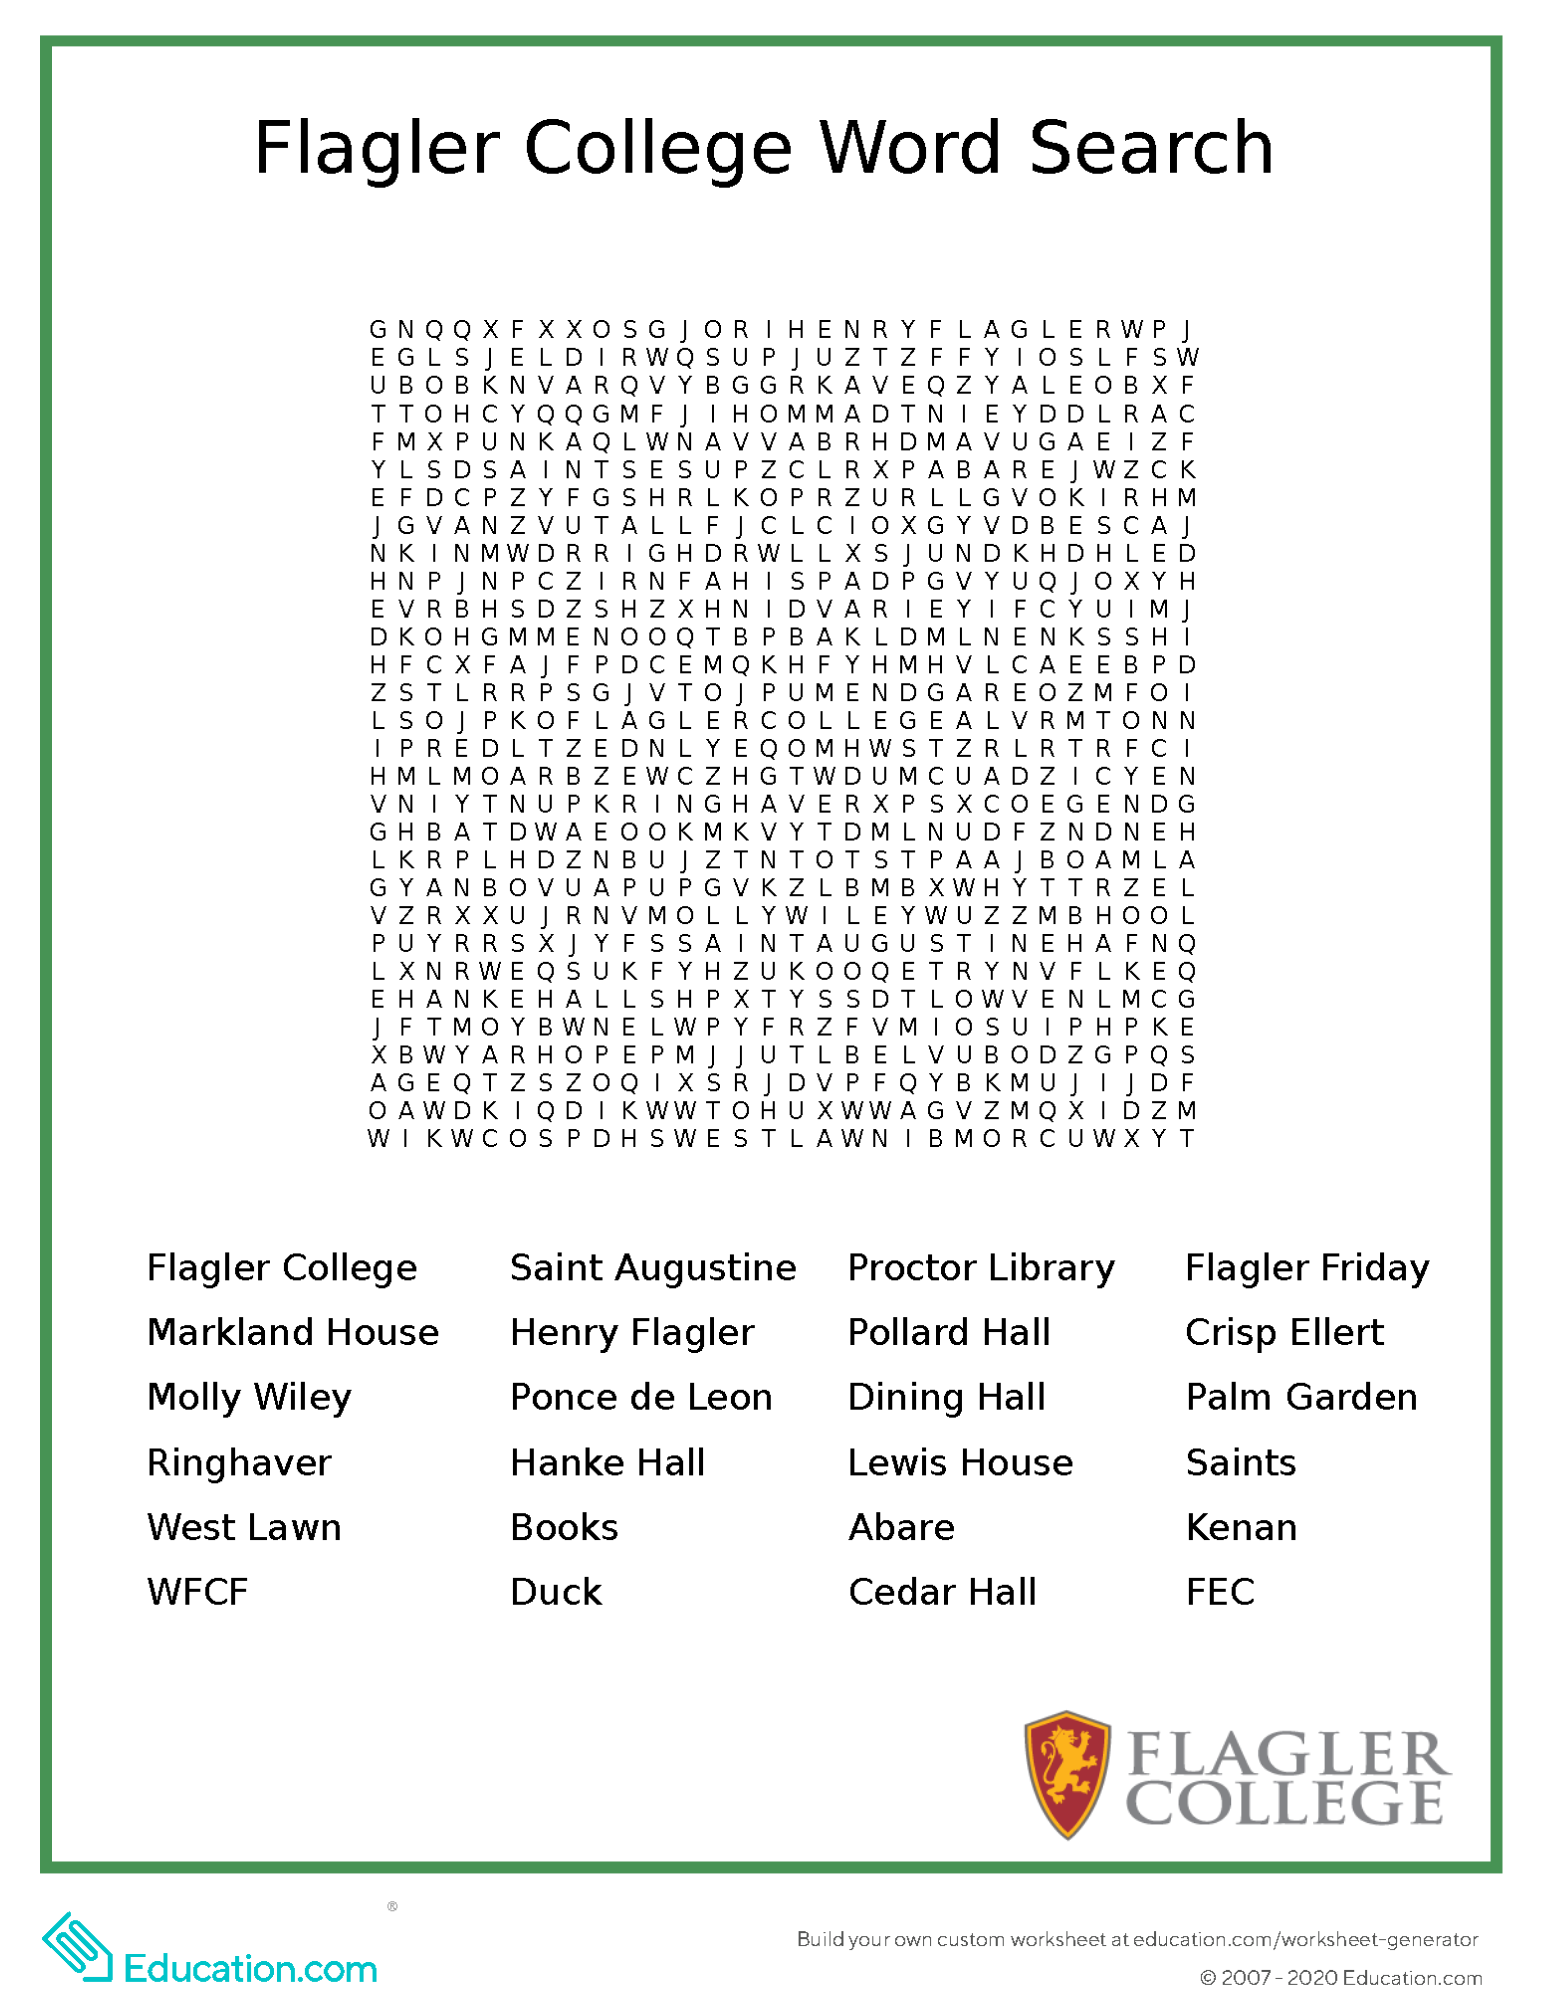 Flagler College Word Search